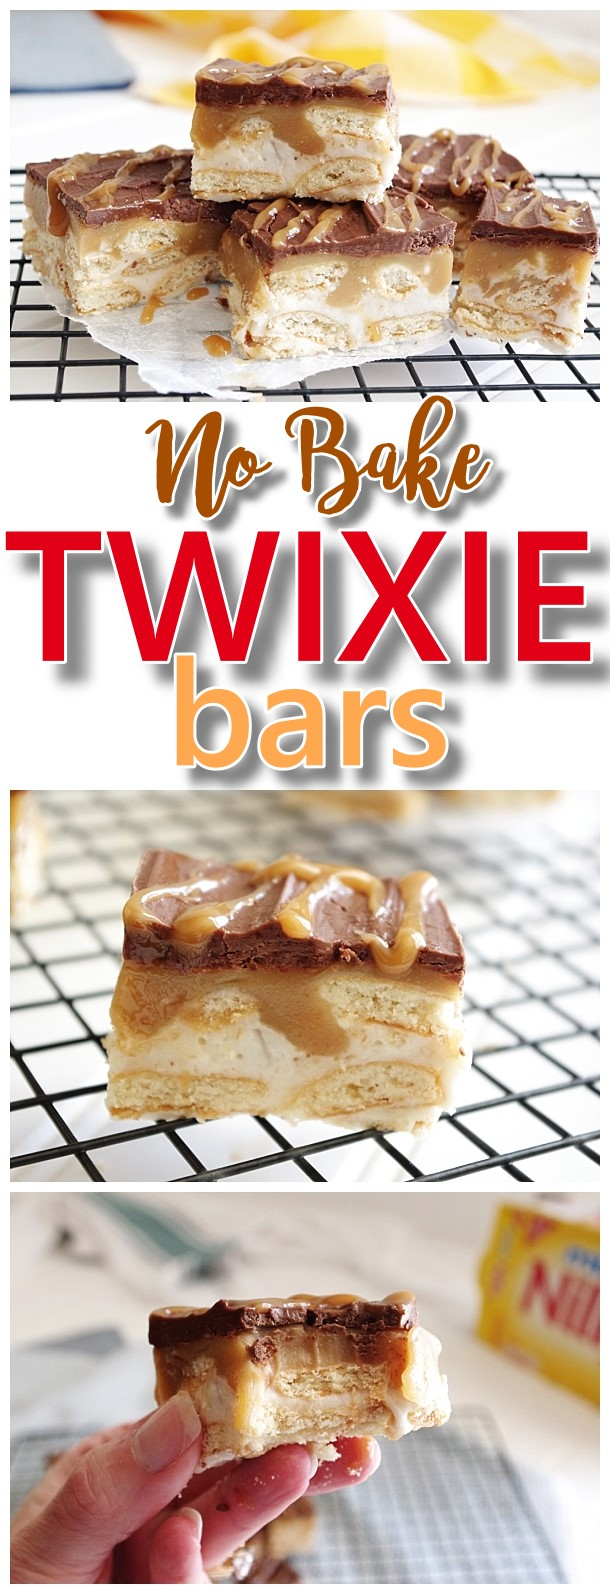 EASY Twixie Bars No Bake Dessert Treats Recipe with Chocolate Caramel Nilla Wafers Cookies Layered Yummy Dessert Bars Recipe for TWIX Candy Bar lovers #twixiebars #nobakebars #nobakedesserts #christmasdesserts #christmascookies #holidaydesserts #easydesserts #twixbars #chocolateandcaramel